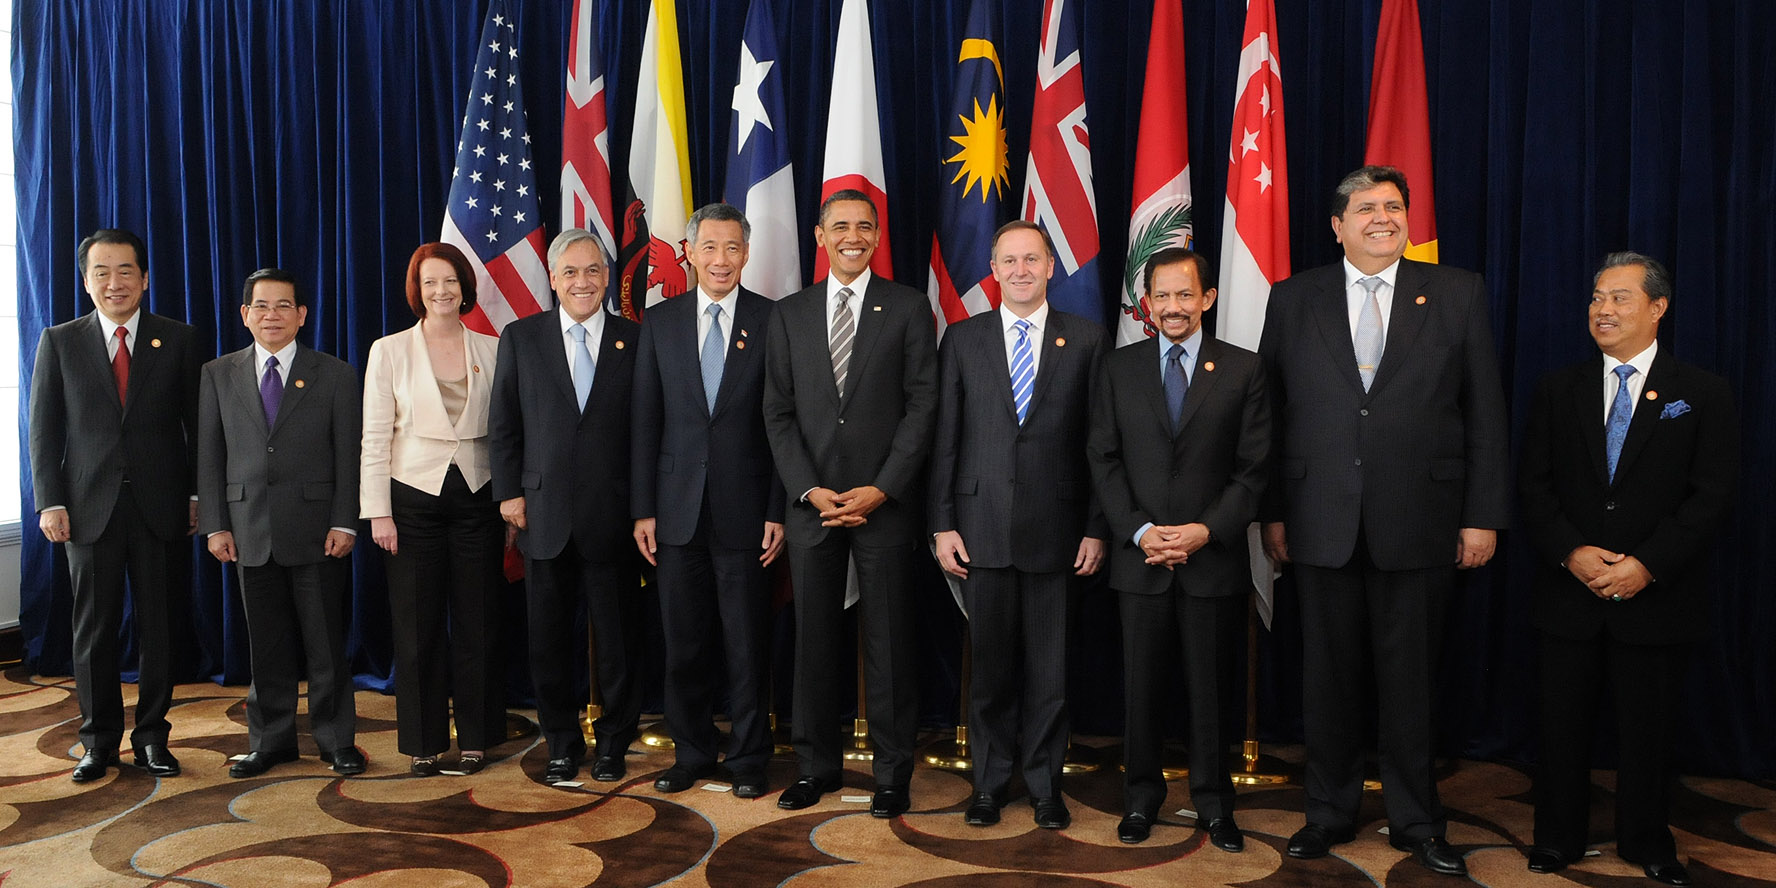 Architects of treason or enlightened leaders? (Photo from 2010 TPP meeting) From left, Naoto Kan (Japan), Nguyễn Minh Triết (Vietnam), Julia Gillard (Australia), Sebastián Piñera (Chile), Lee Hsien Loong (Singapore), Barack Obama (U.S.), John Key (New Zealand), Hassanal Bolkiah (Brunei), Alan García (Peru), and Muhyiddin Yassin (Malaysia).